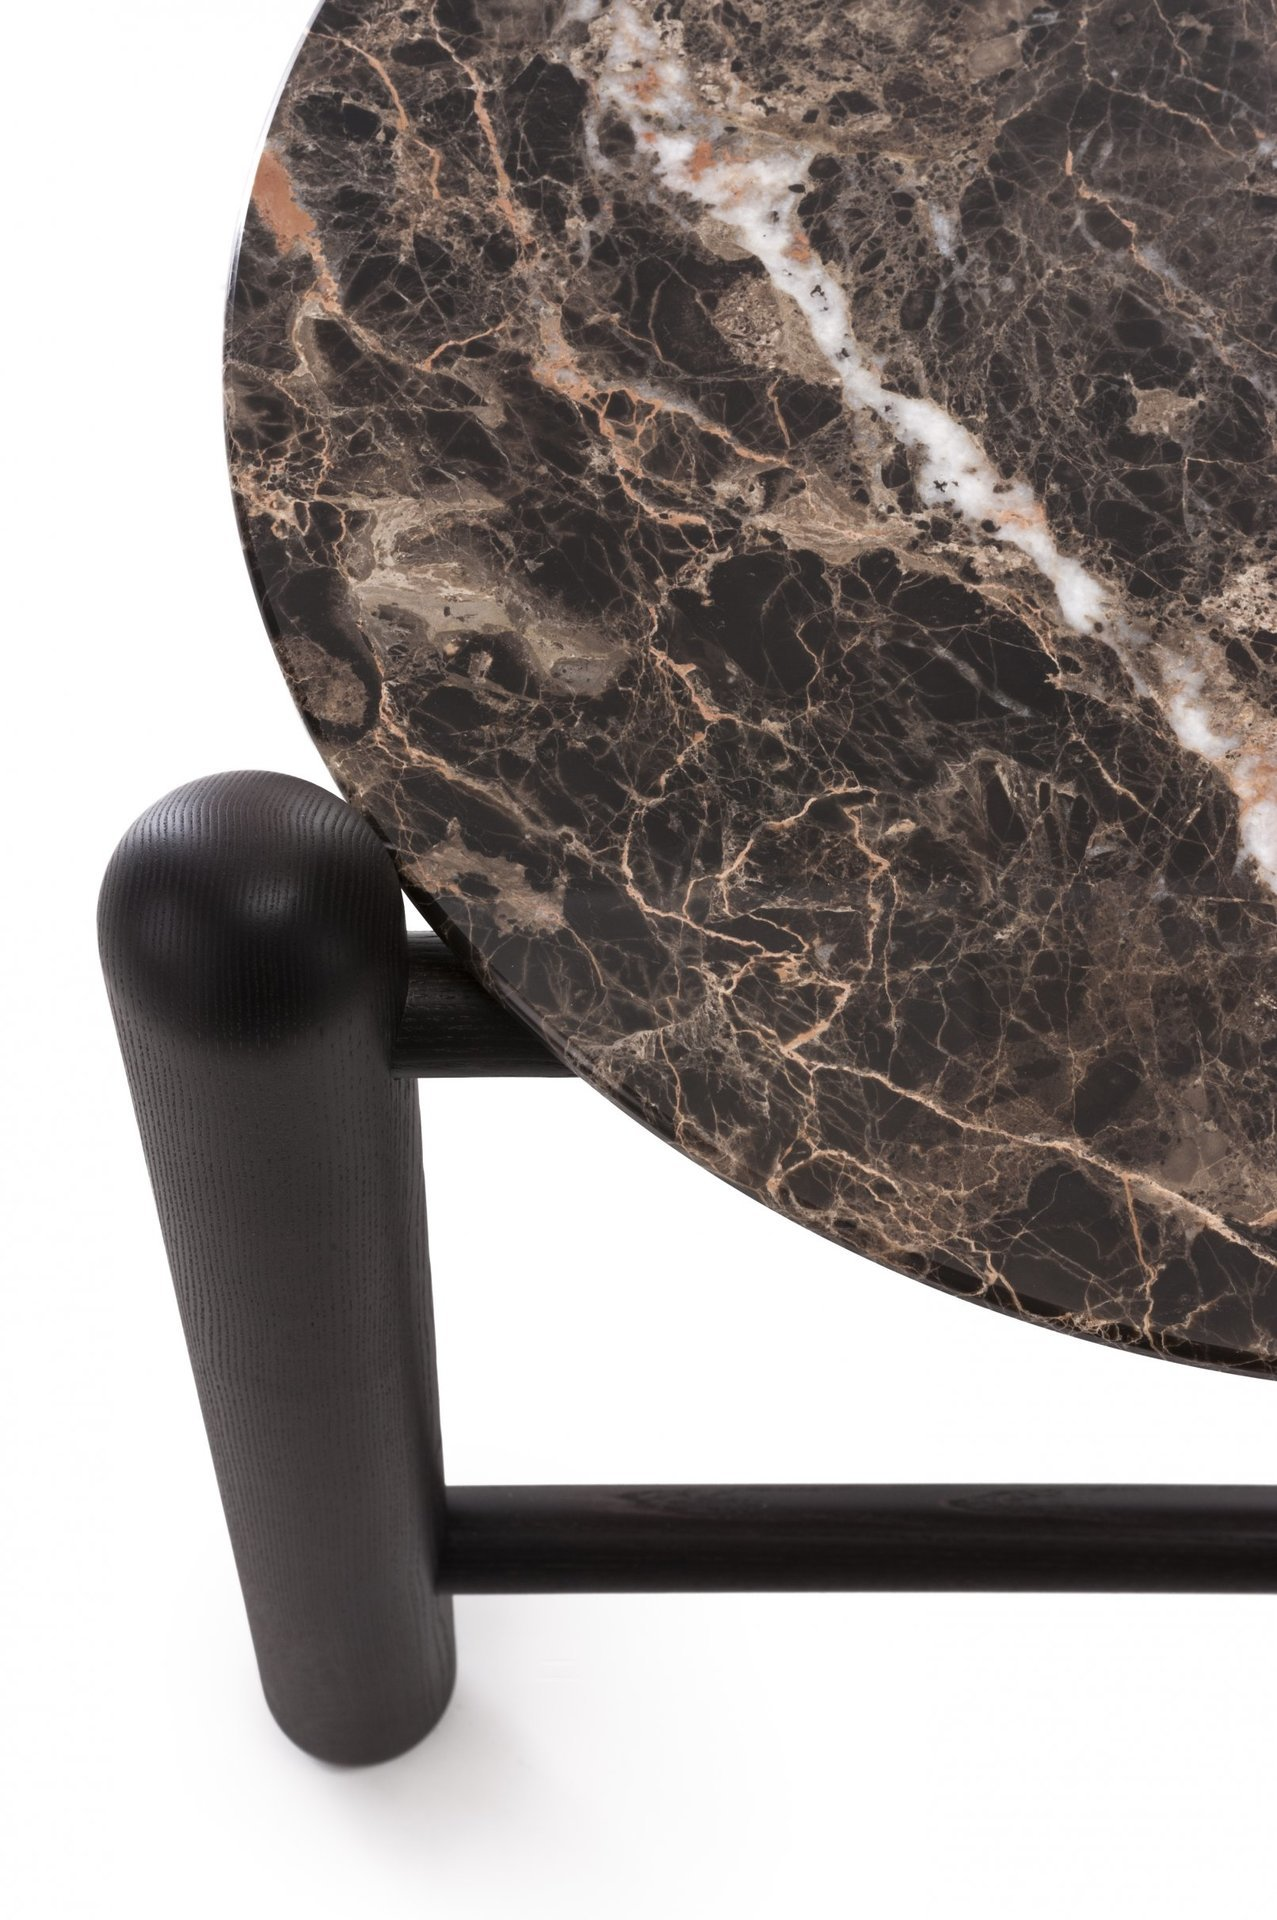 Hold On Side Table - Combining the sturdy rigor of the ash structure and the lavish elegance of Emperador Brown marble, this side table will add an elegant and modern touch to a living room, bedroom, or study. It's part of the Hold On collection, comprising sophisticated pieces with a contemporary aesthetic. It can be combined with the others in the collection, for a cohesive look.  | Matter of Stuff